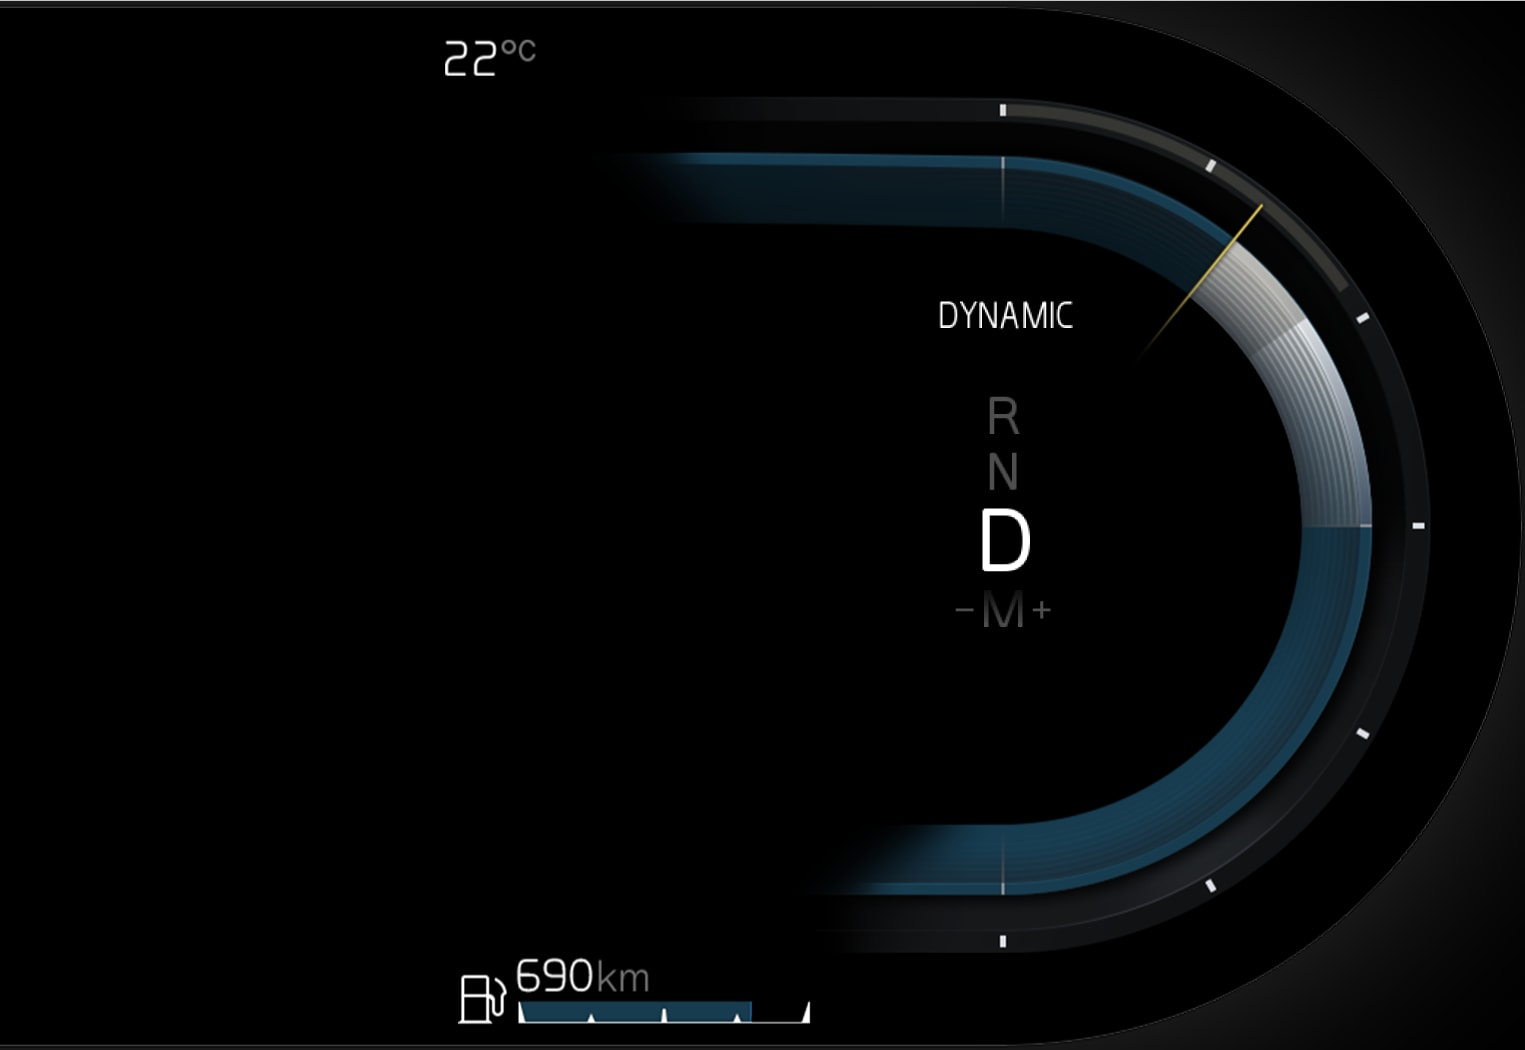 P5-21w22-iCup-Drive mode in driver display non hybrids